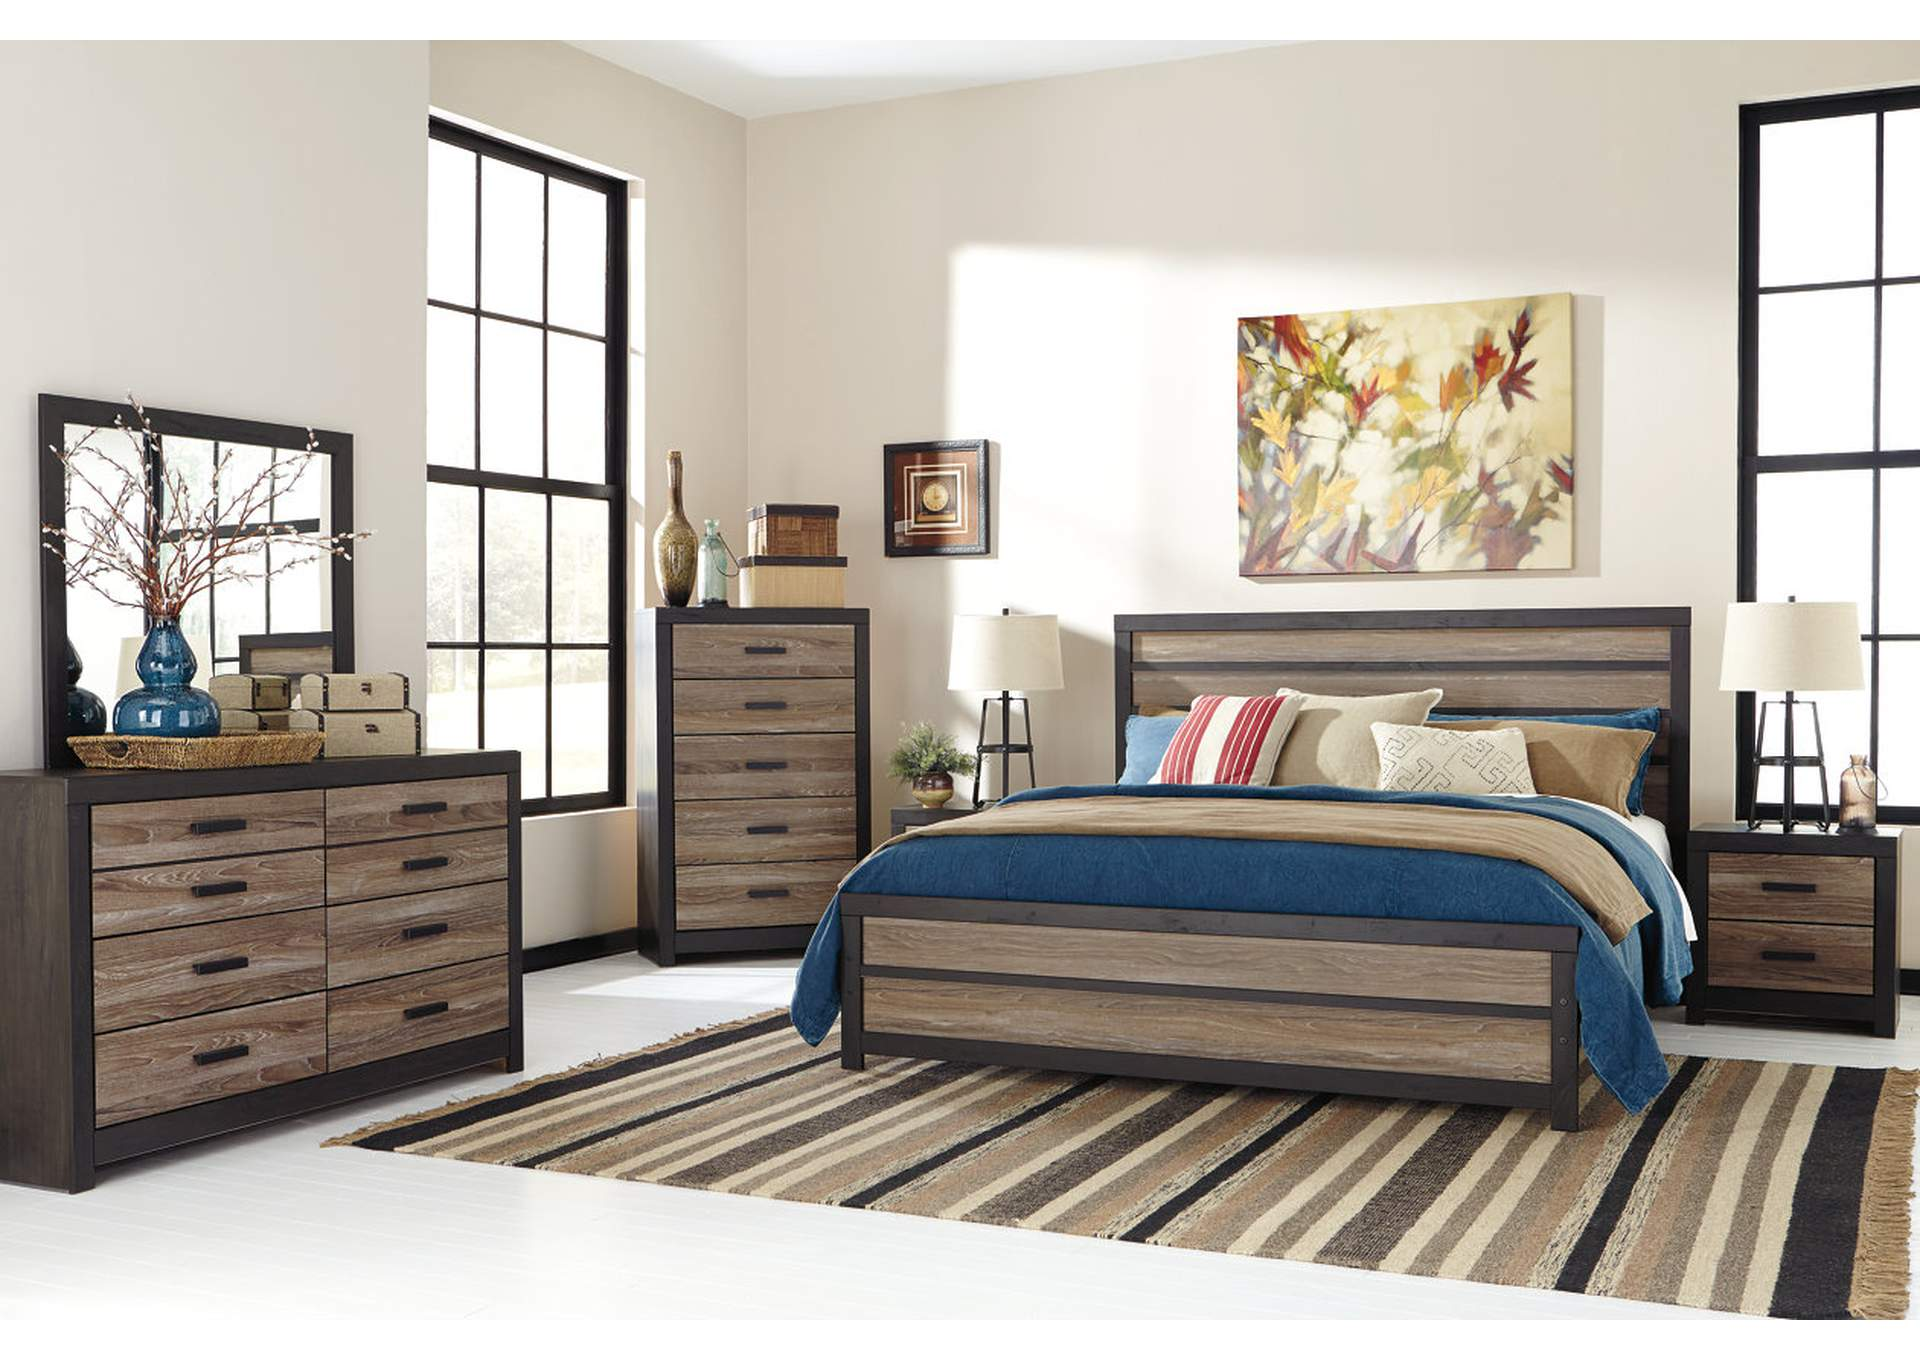 Harlinton Queen Panel Bed w/Dresser, Mirror, Drawer Chest & Nightstand,Signature Design By Ashley